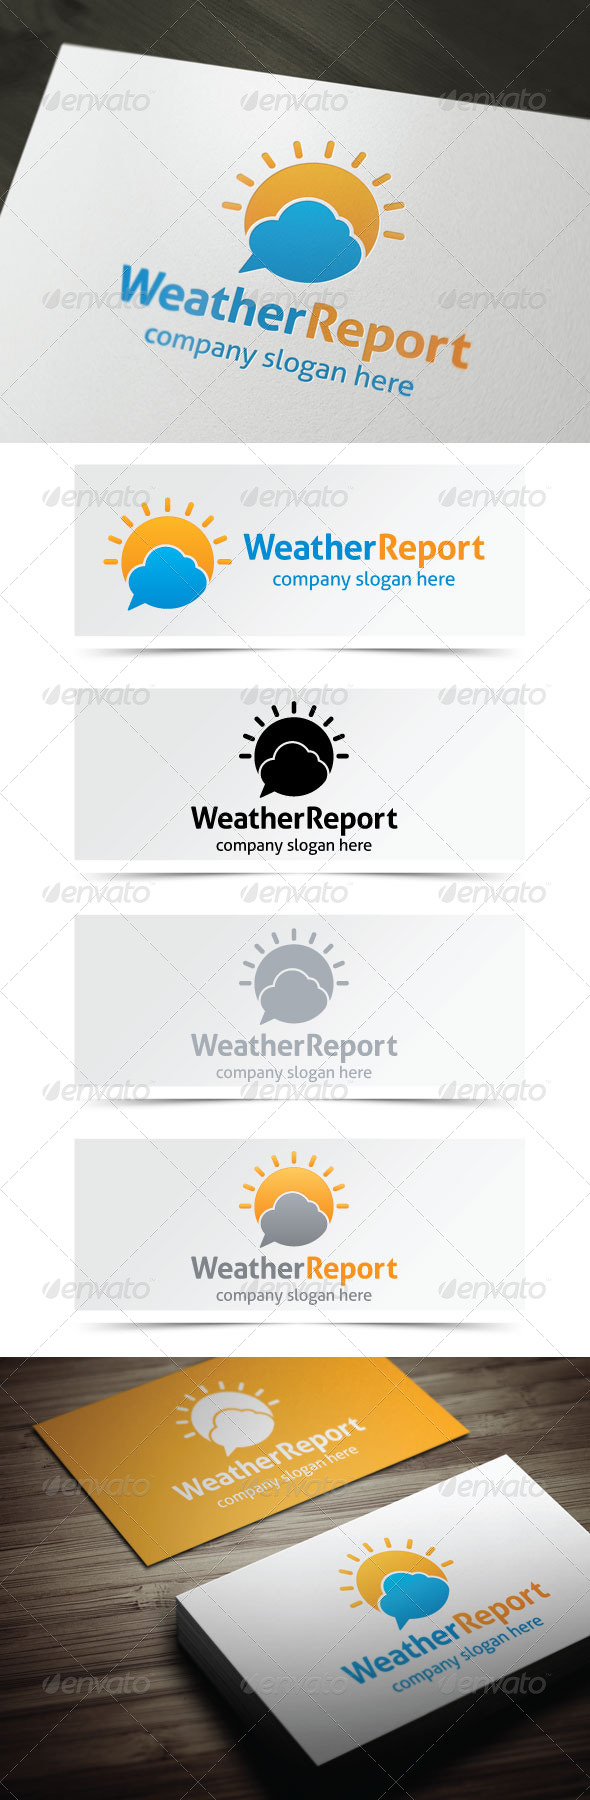 GraphicRiver Weather Report 4843760